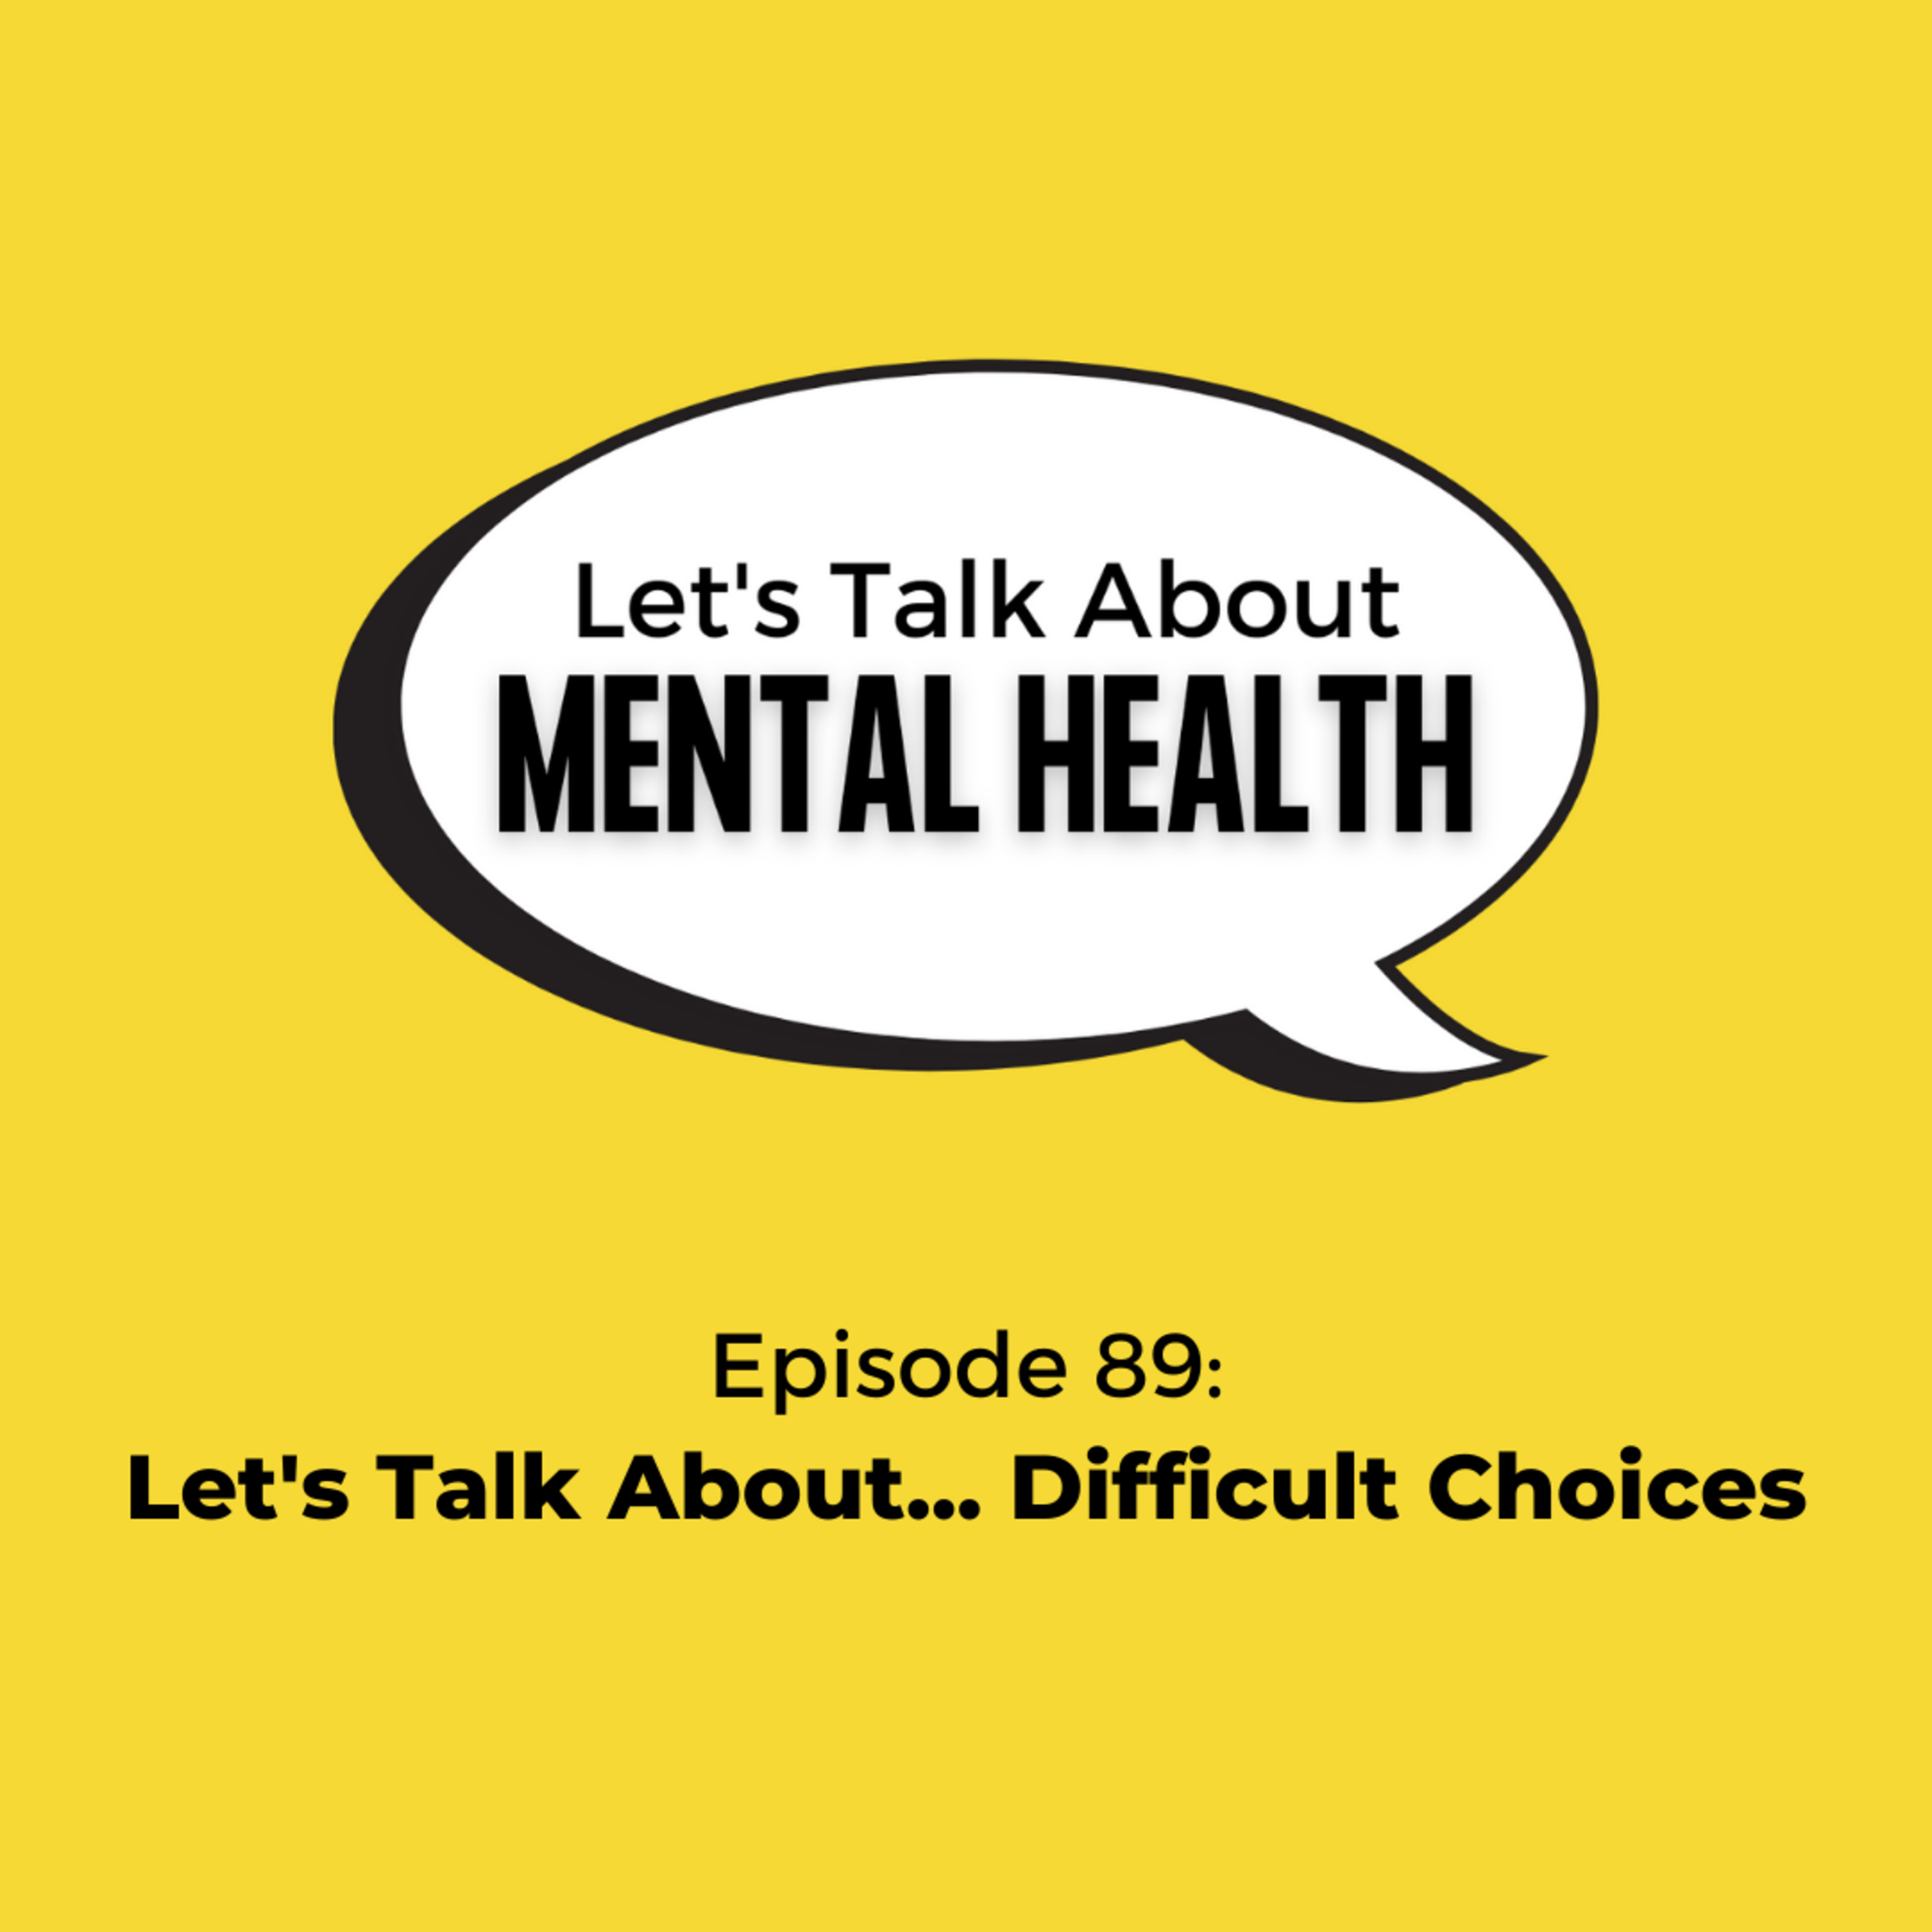 Let's Talk About Mental Health - Let's Talk About... Difficult Choices